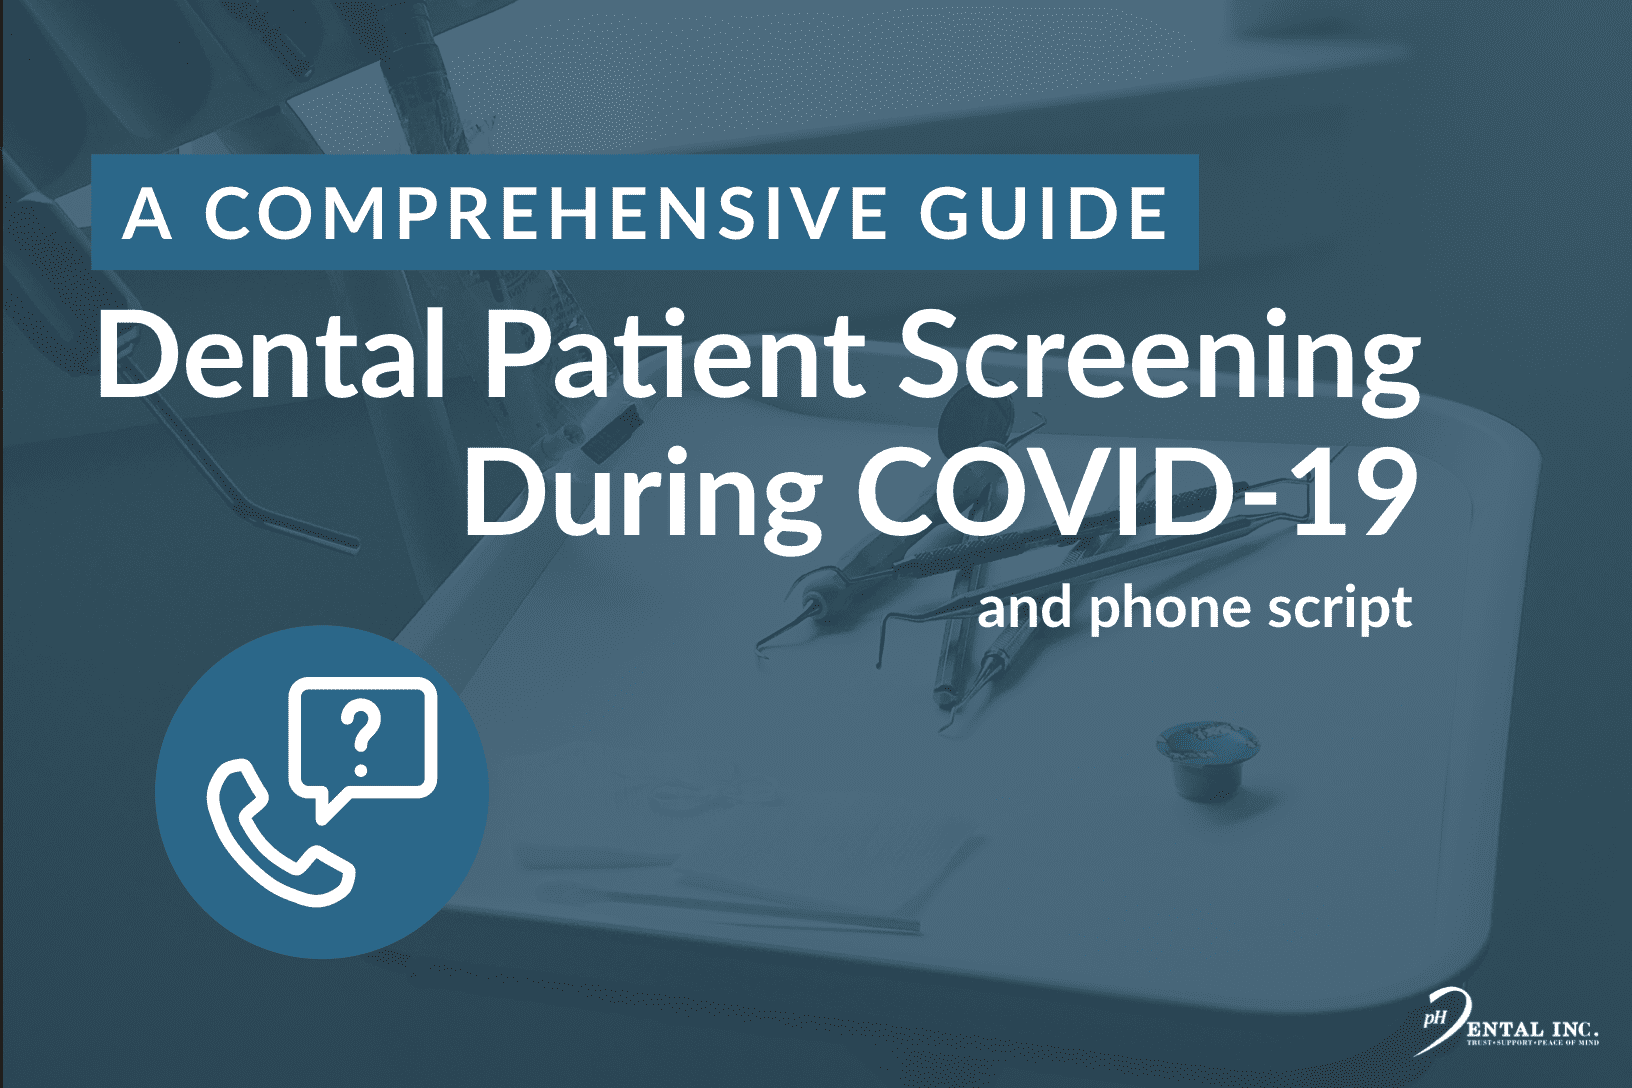 a comprehensive guide to dental patient screening during COVID-19